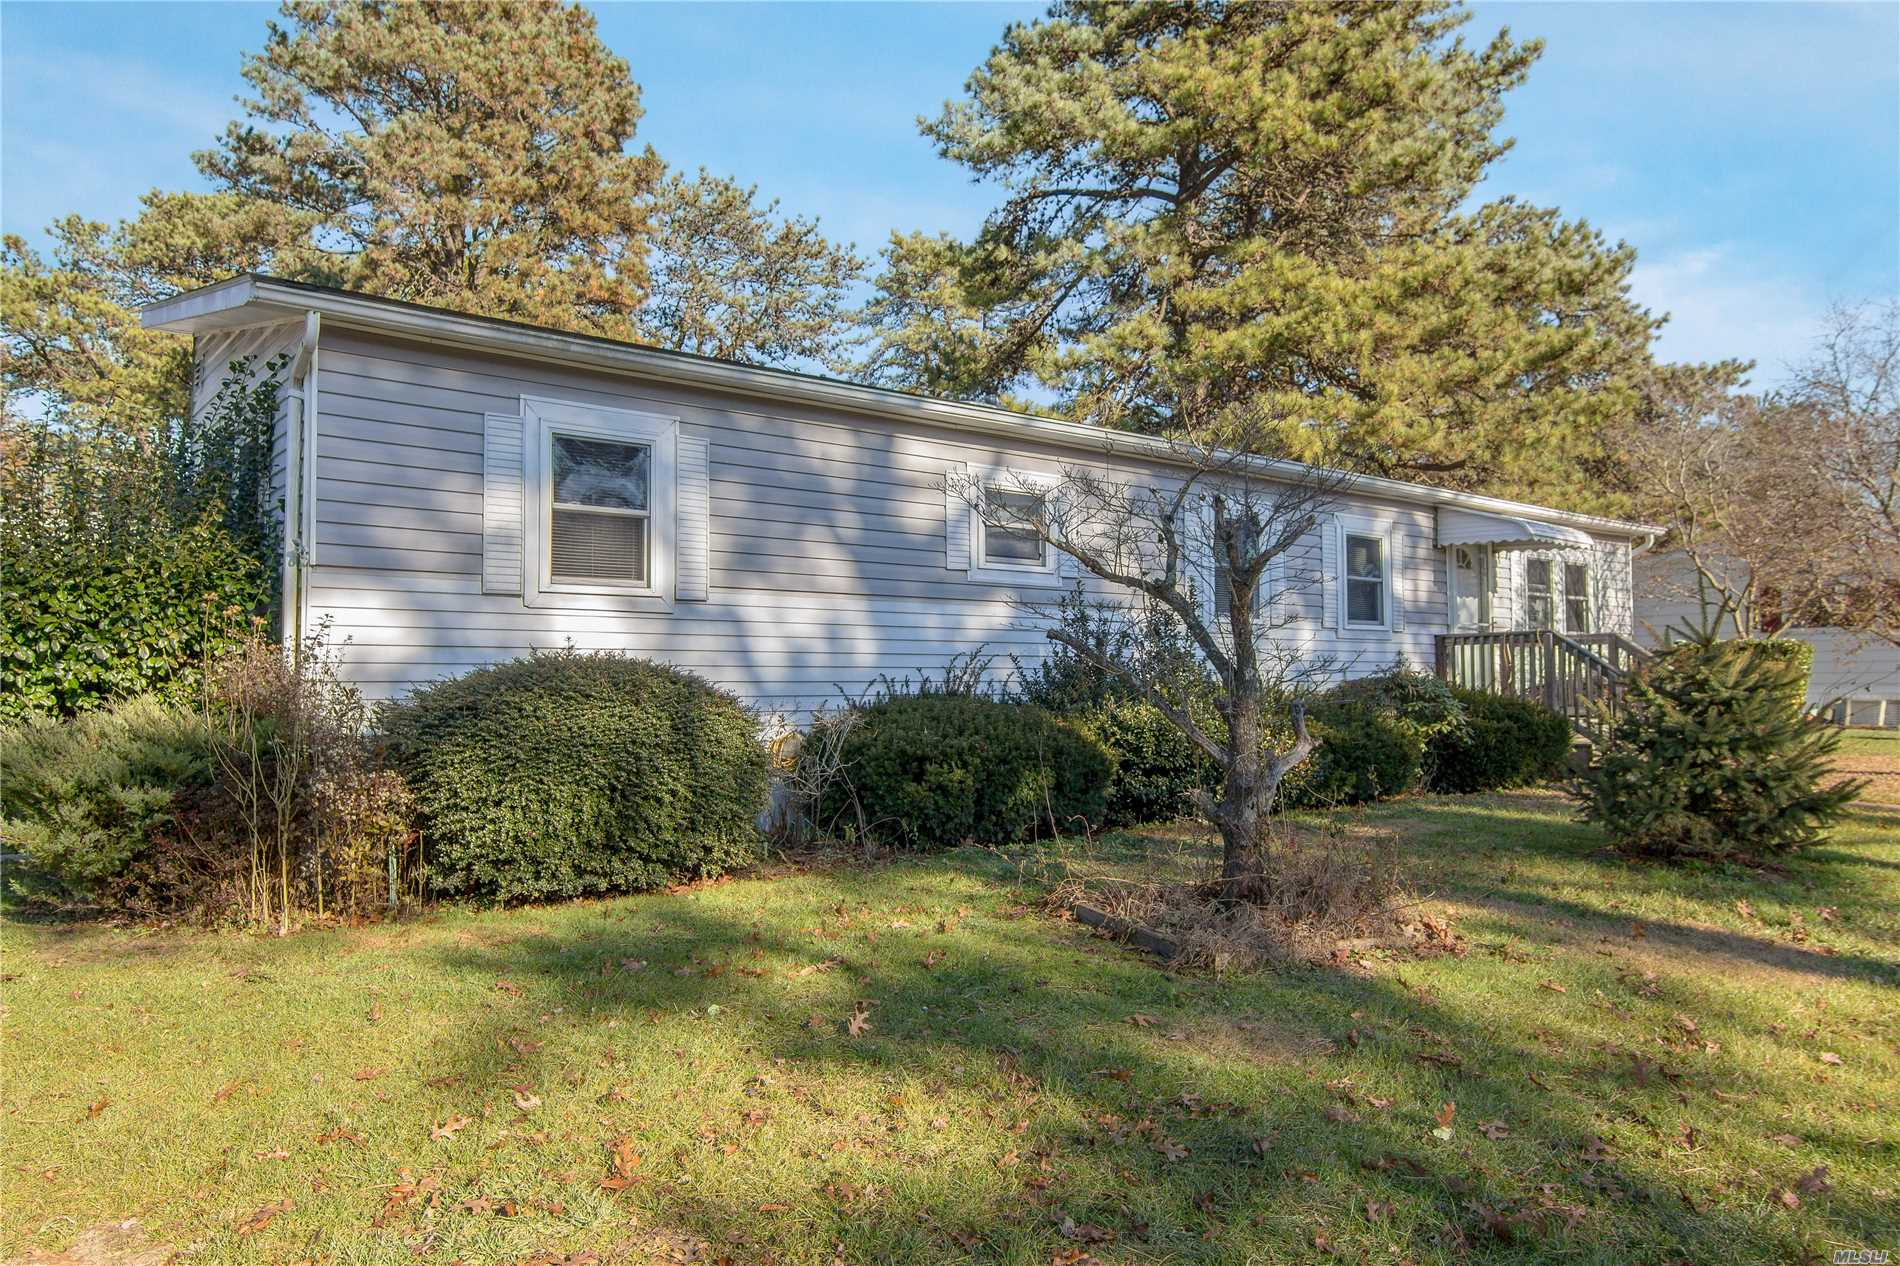 55 And Older Community. Cash Only. 1976 Newport.Large Lot. Kitchen With Newer Appliances, Large Living Room. Two Bedrooms, One Full Bath.New Washer And Dryer. Deck Off Living Room. Land Rent 885. Per Month, Includes Water, Trash, Cesspool. Use Of Club House , Beach Rights.No Dogs Over 45 Lbs.